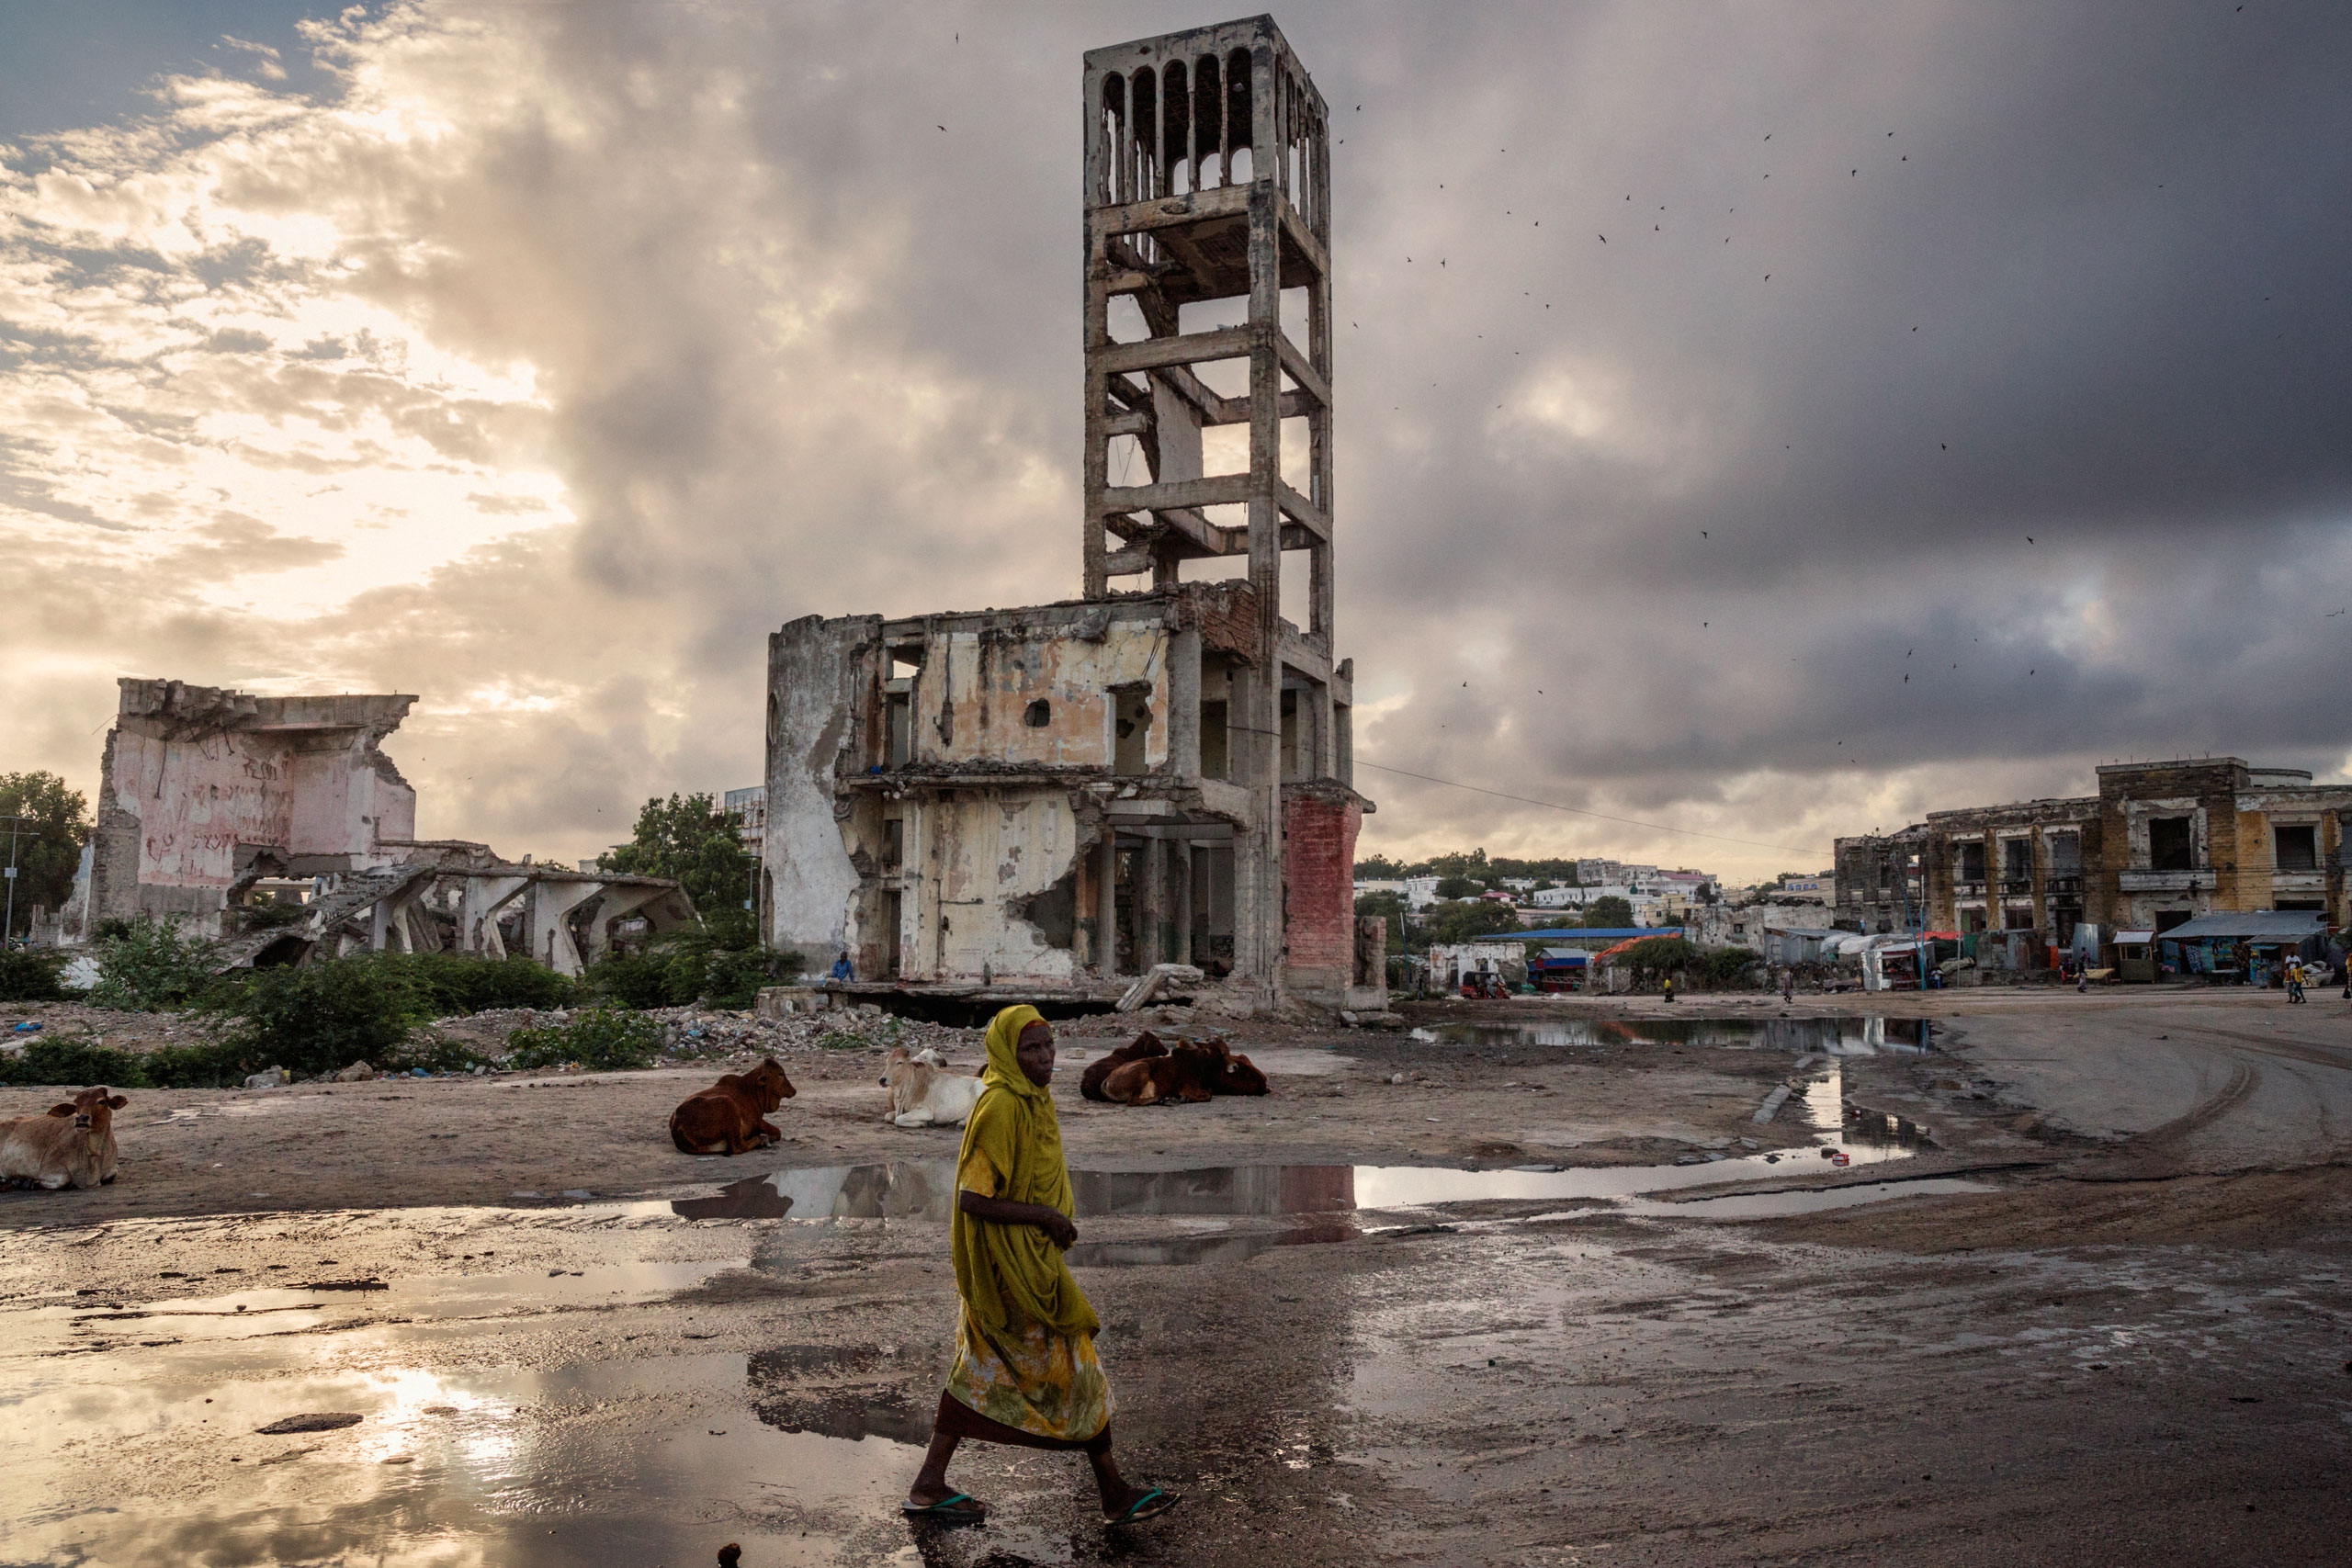 The destroyed structure of the old parliament in the Hamar Weyne district, in the southeastern Banaadir region of Somalia. Mogadishu is a city at a crossroads: On one side the asymmetrical strategy of terror by Al-Shabaab, and on the other the desire of Somalis to return to normal life. Mogadishu, Somalia. October 19, 2015.